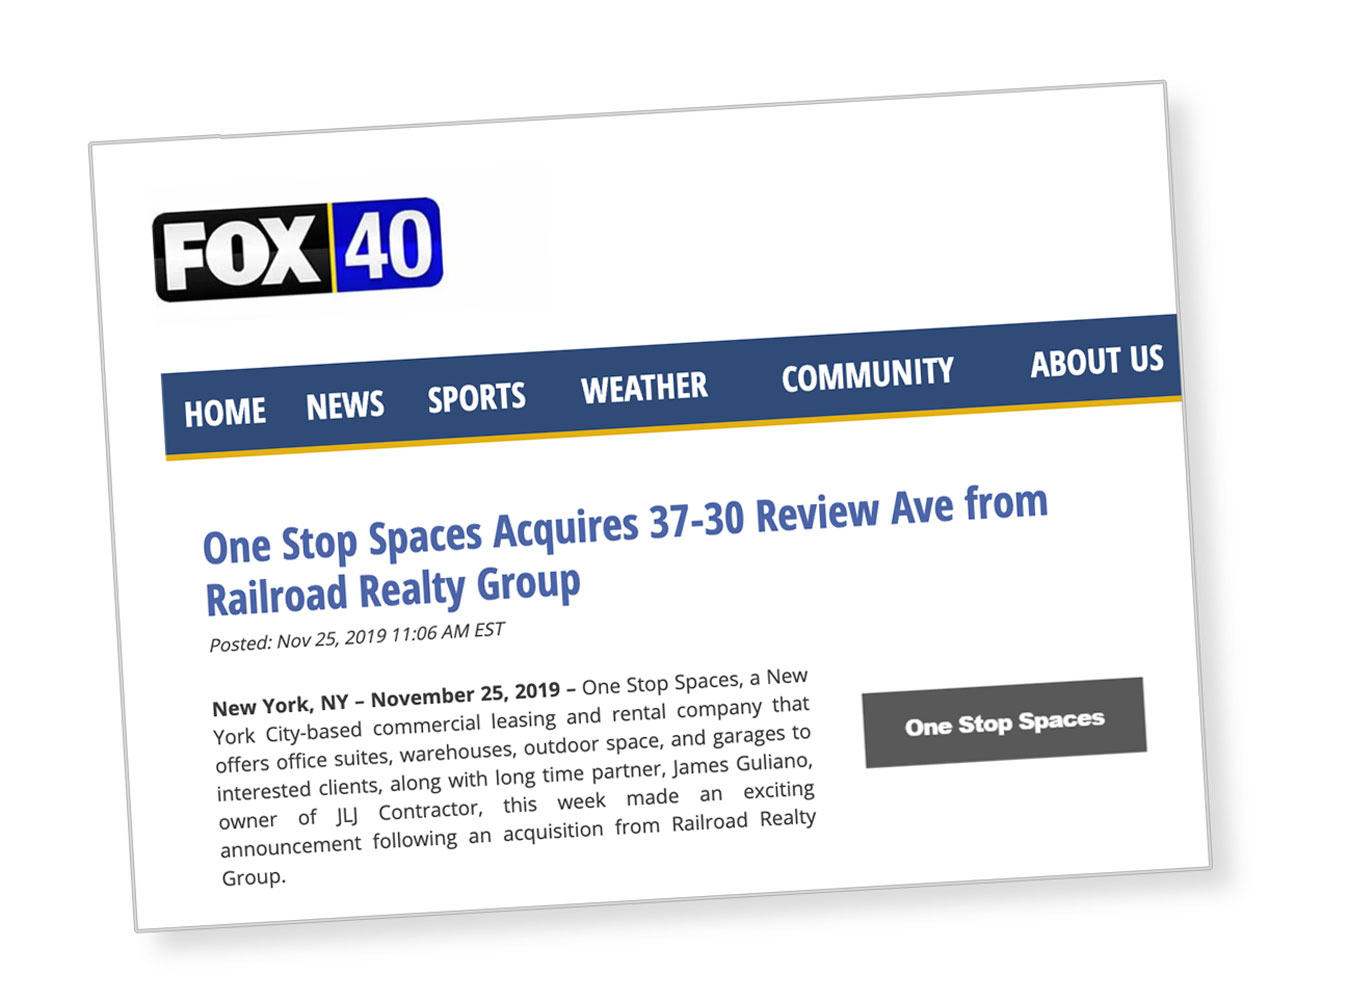 One Stop Spaces Acquires 37-30 Review Avenue from Railroad Realty Group